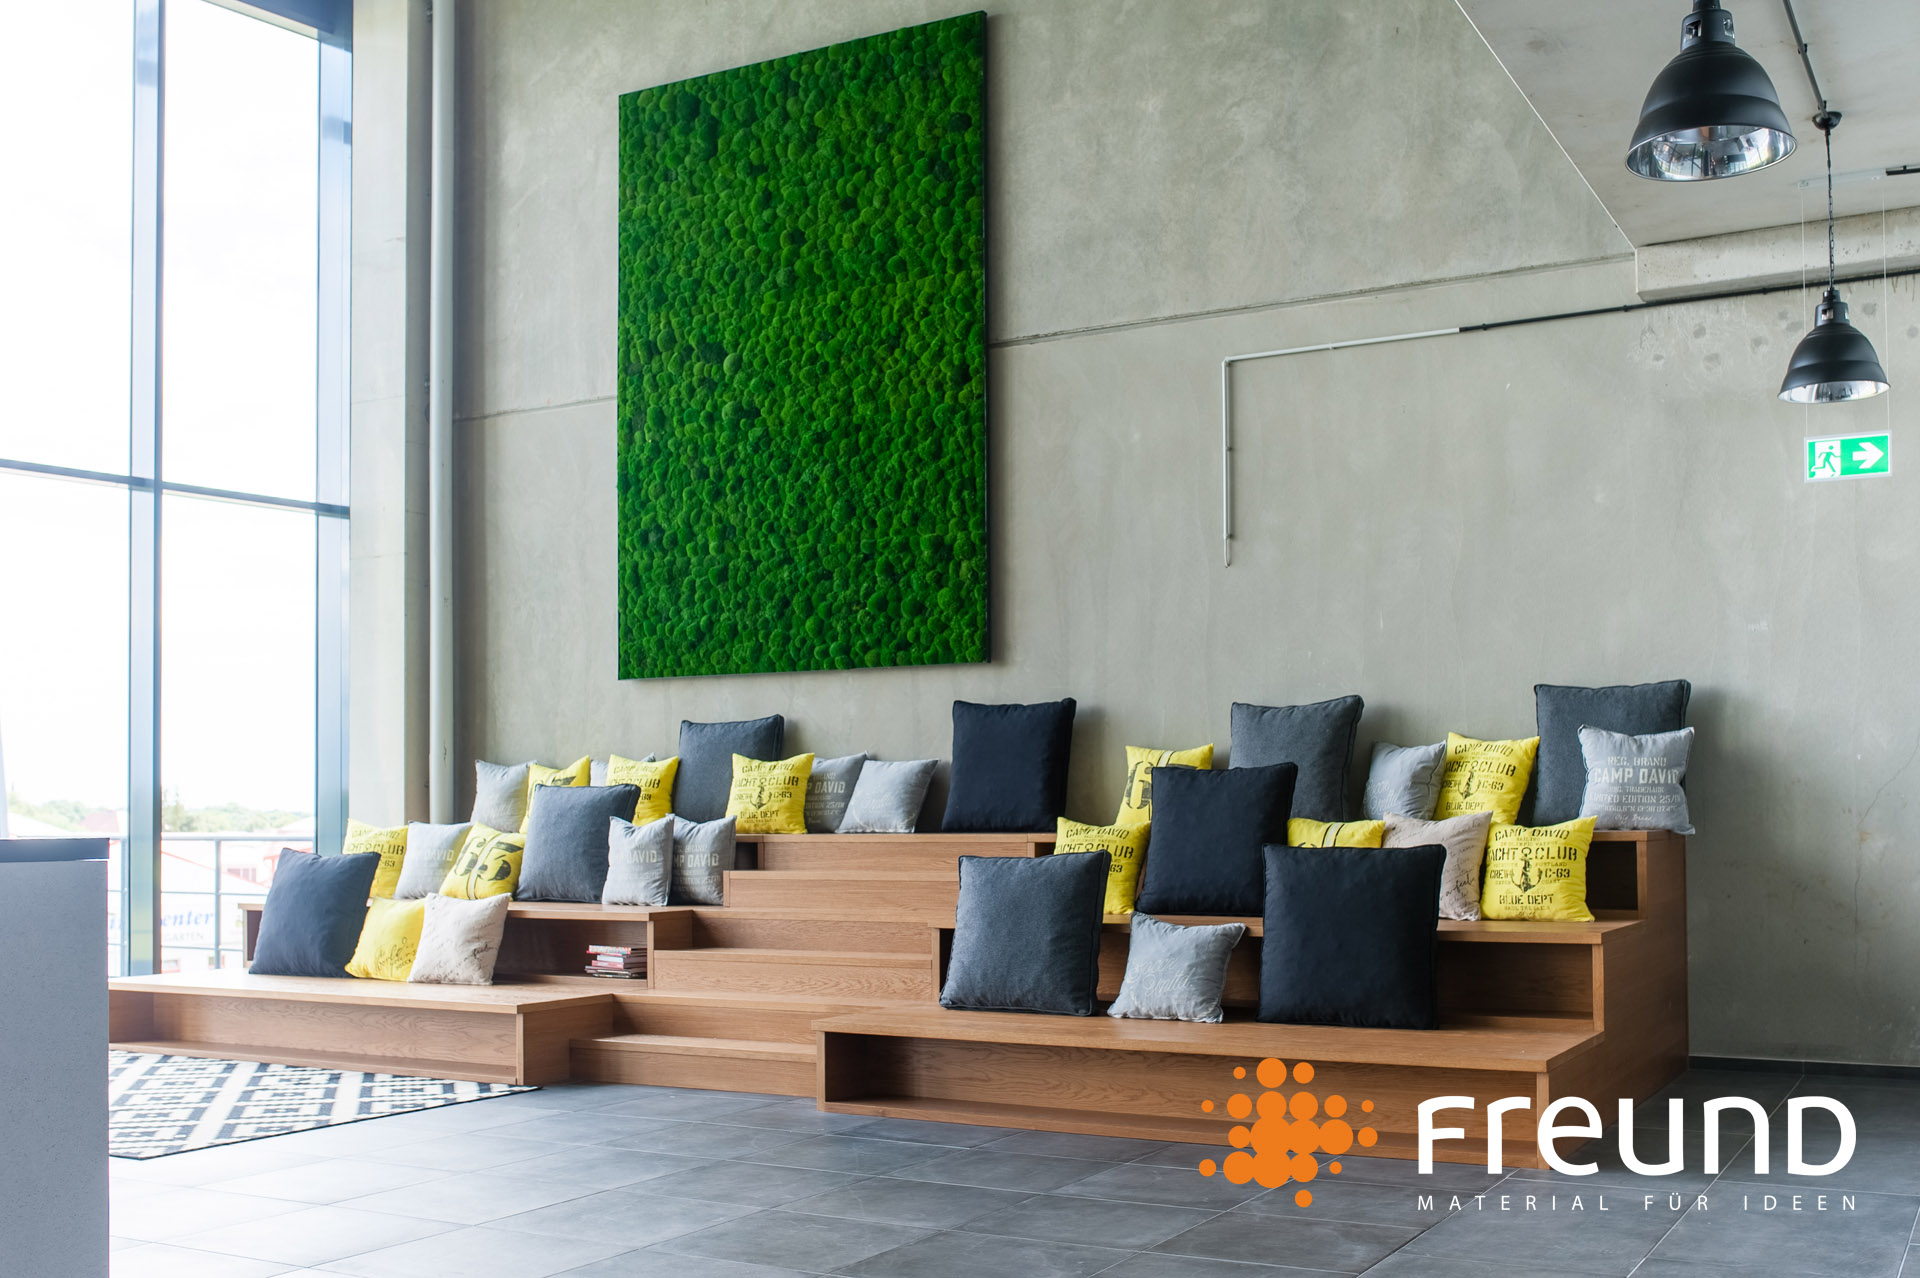 Freund GmbH Moosmanufaktur | by andy - for better moods